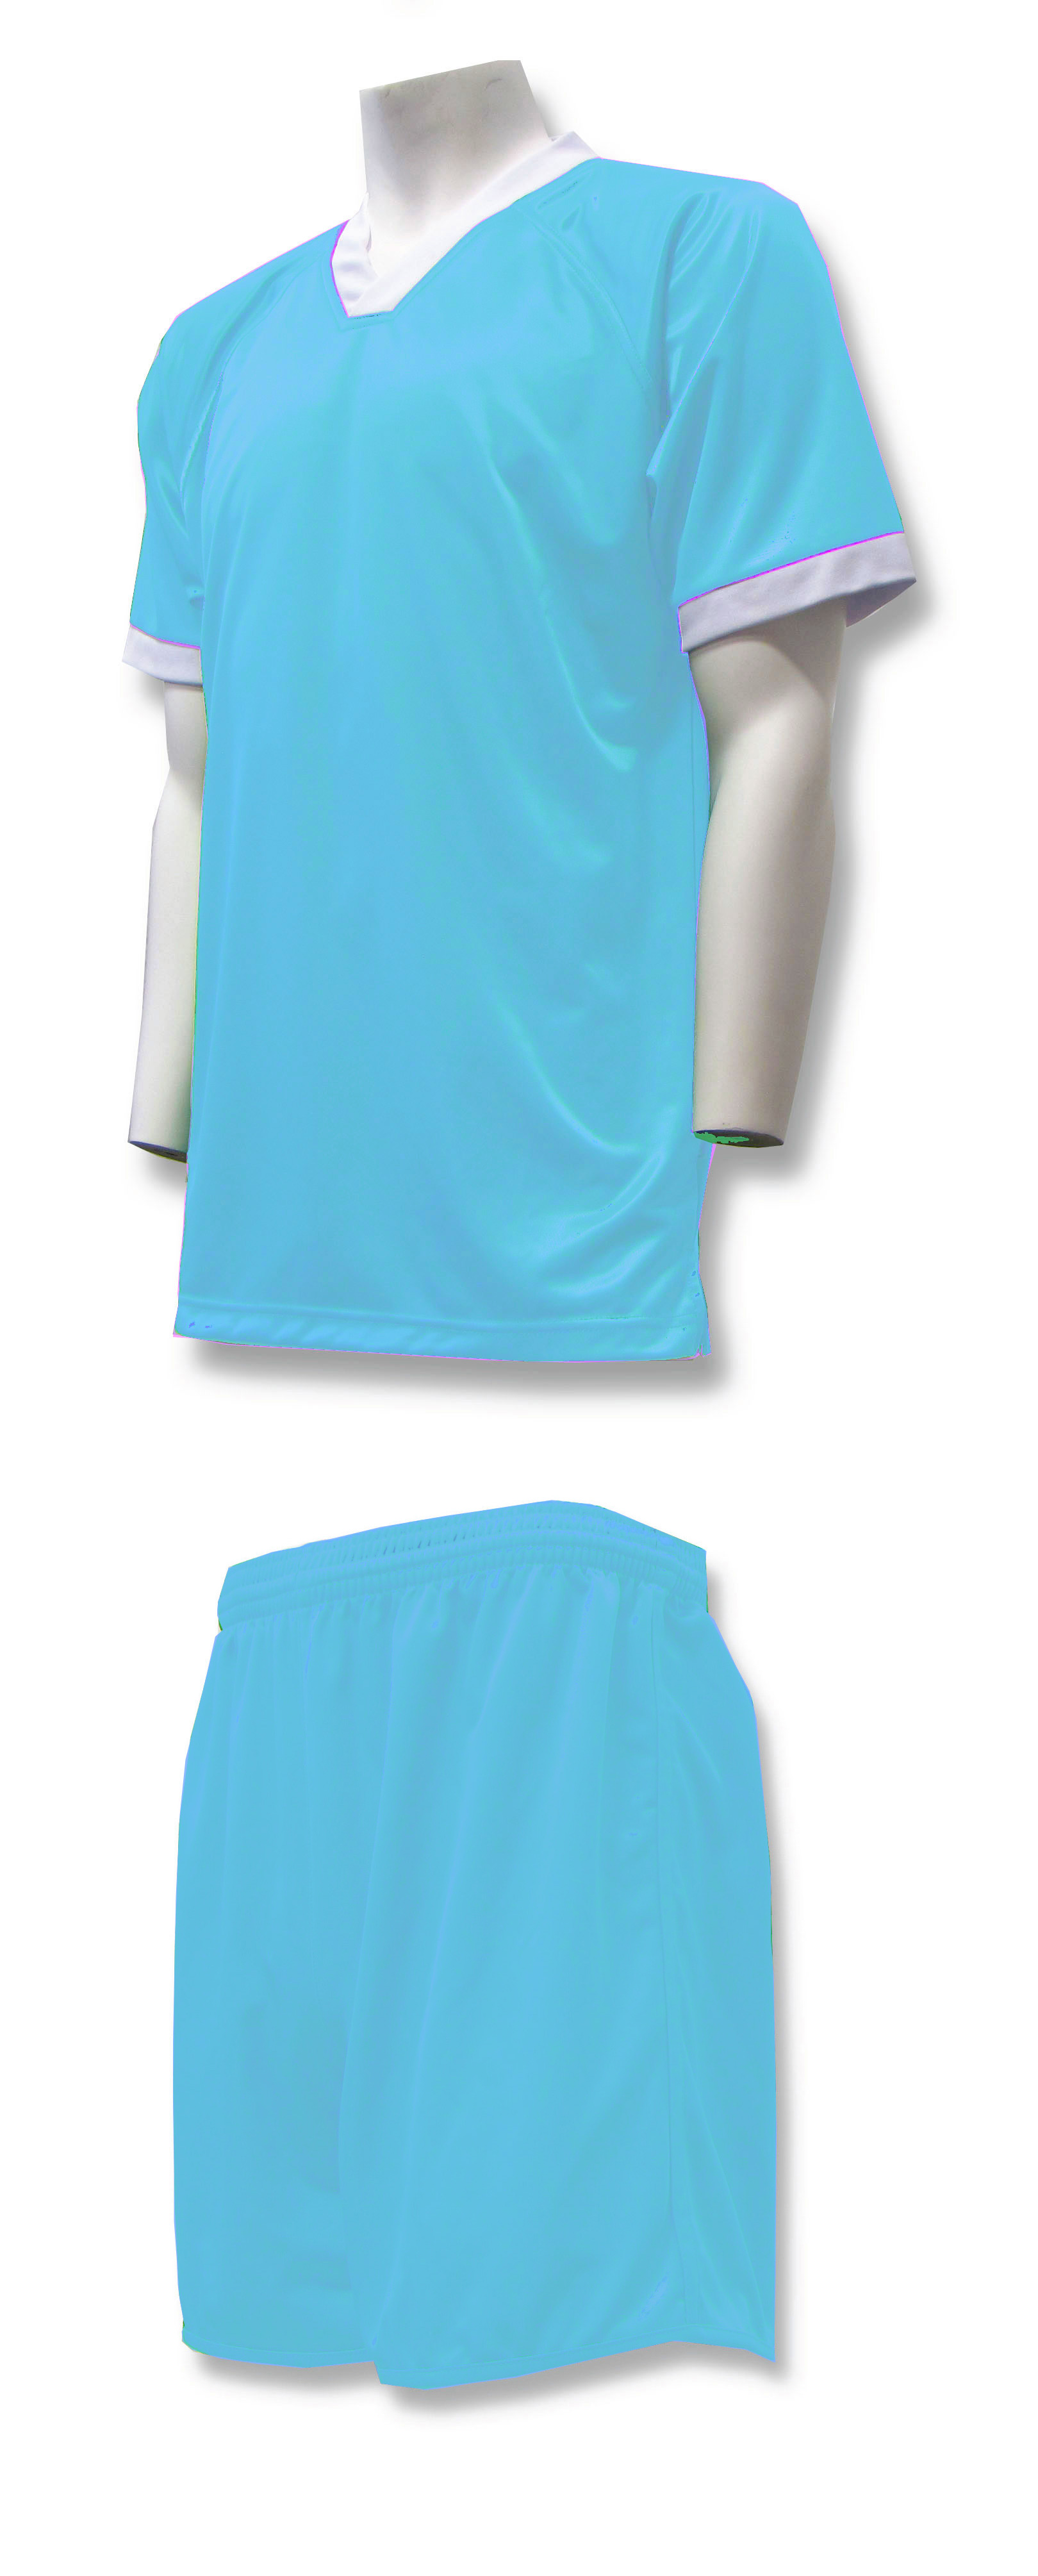 Forza soccer uniform kit in sky blue by Code Four Athletics